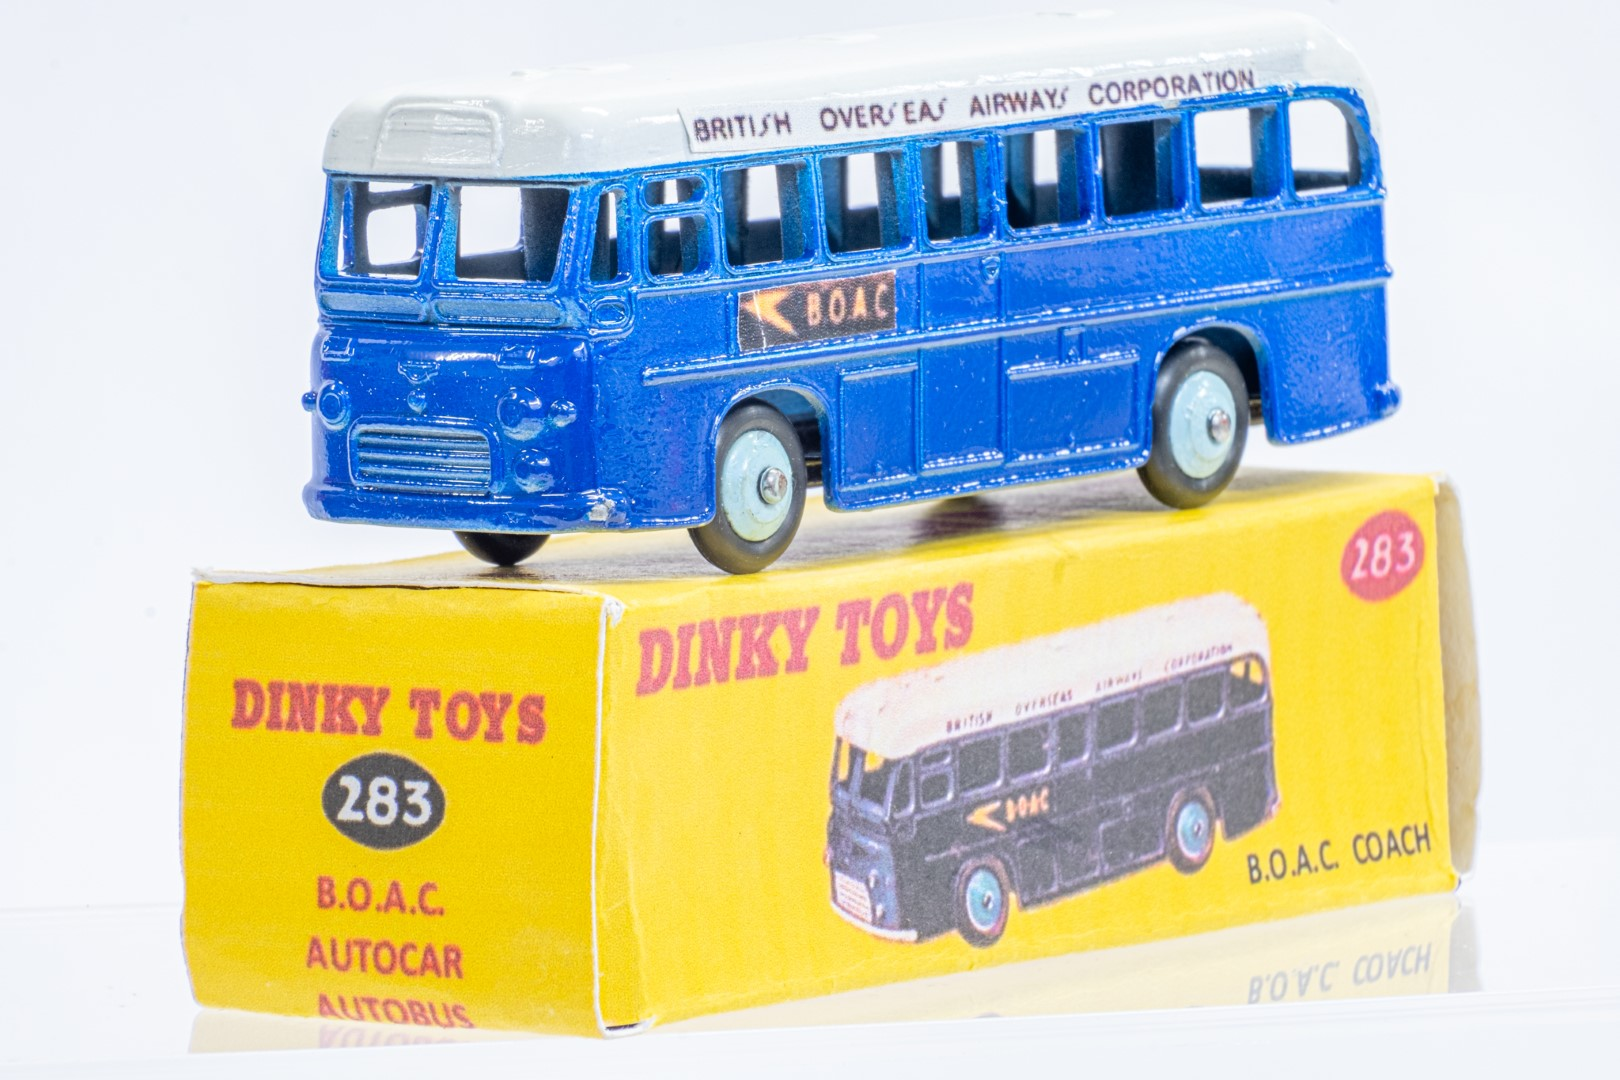 Dinky Single Decker Bus - B.O.A.C. - Code 3 & Reproduction Box - Image 2 of 7